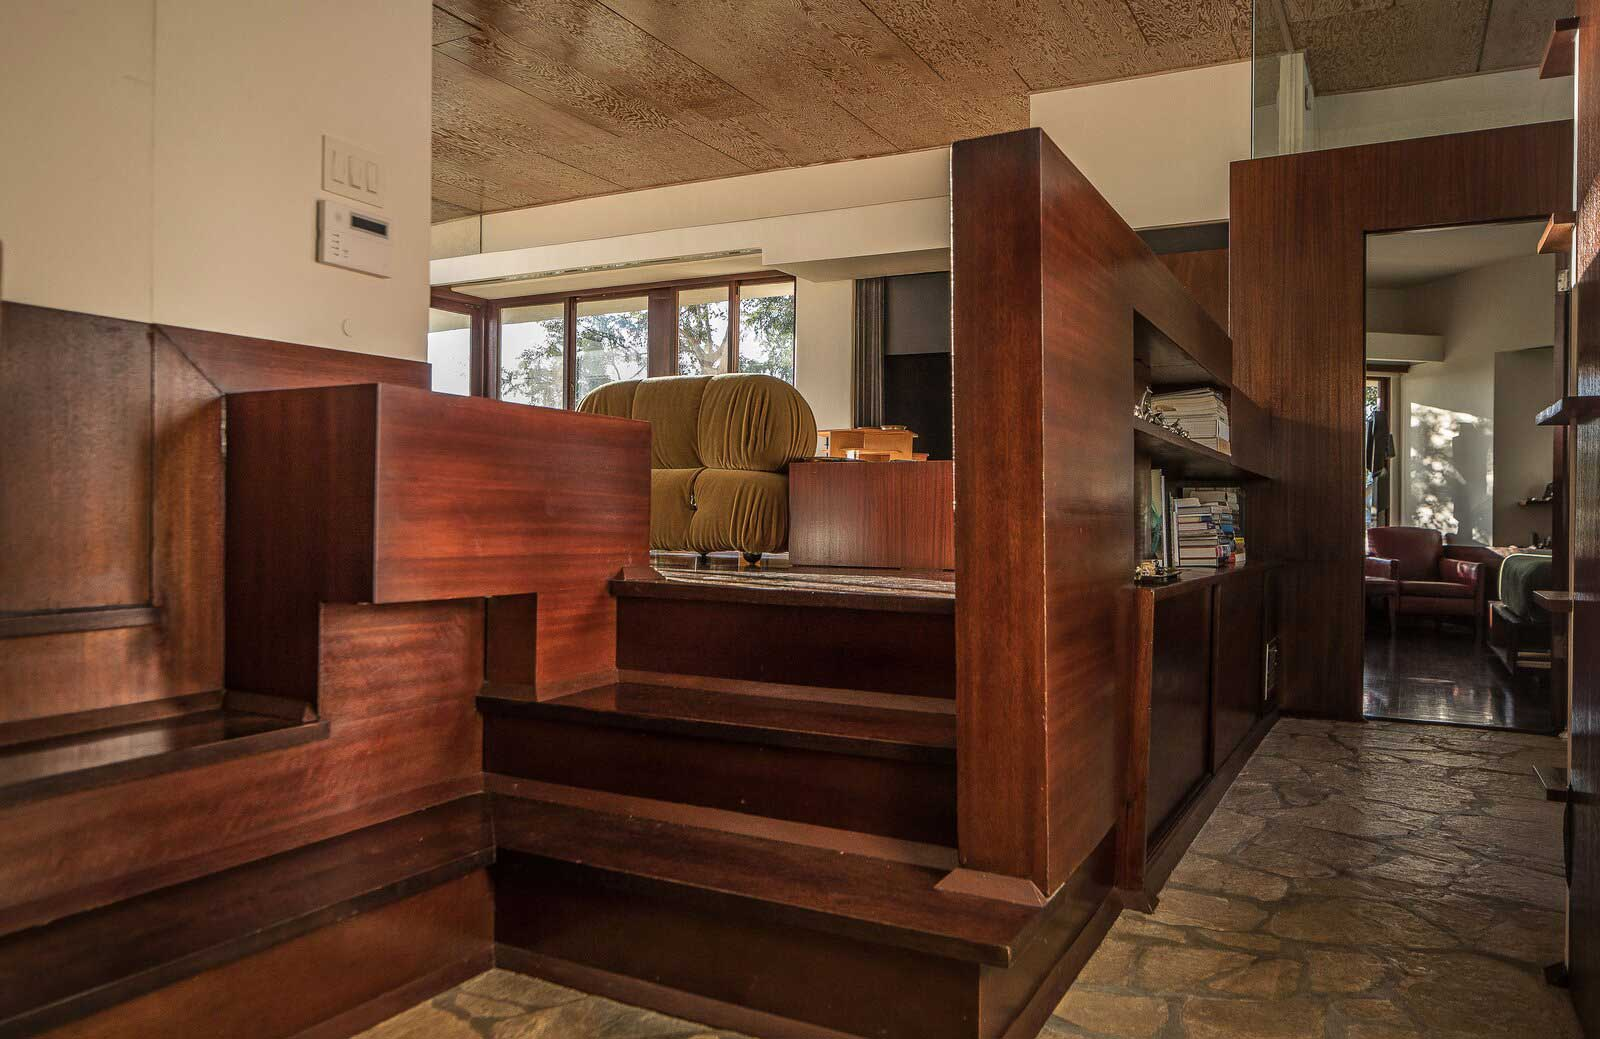 The penthouse apartment has original mahogany cabinetry and stairs, as well as period plywood ceilings